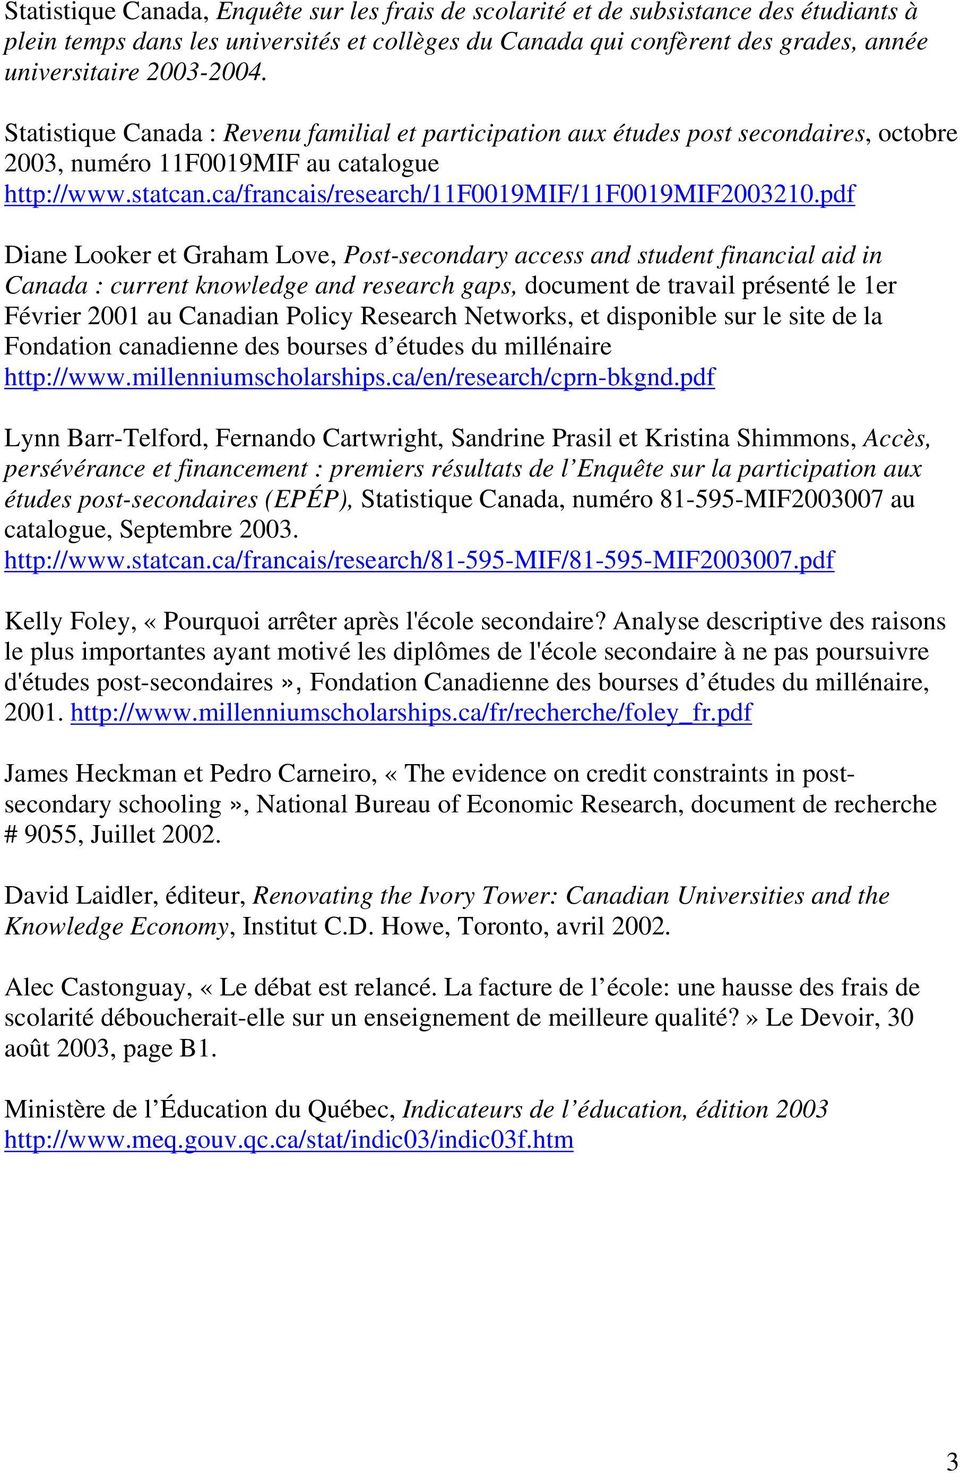 pdf Diane Looker et Graham Love, Post-secondary access and student financial aid in Canada : current knowledge and research gaps, document de travail présenté le 1er Février 2001 au Canadian Policy